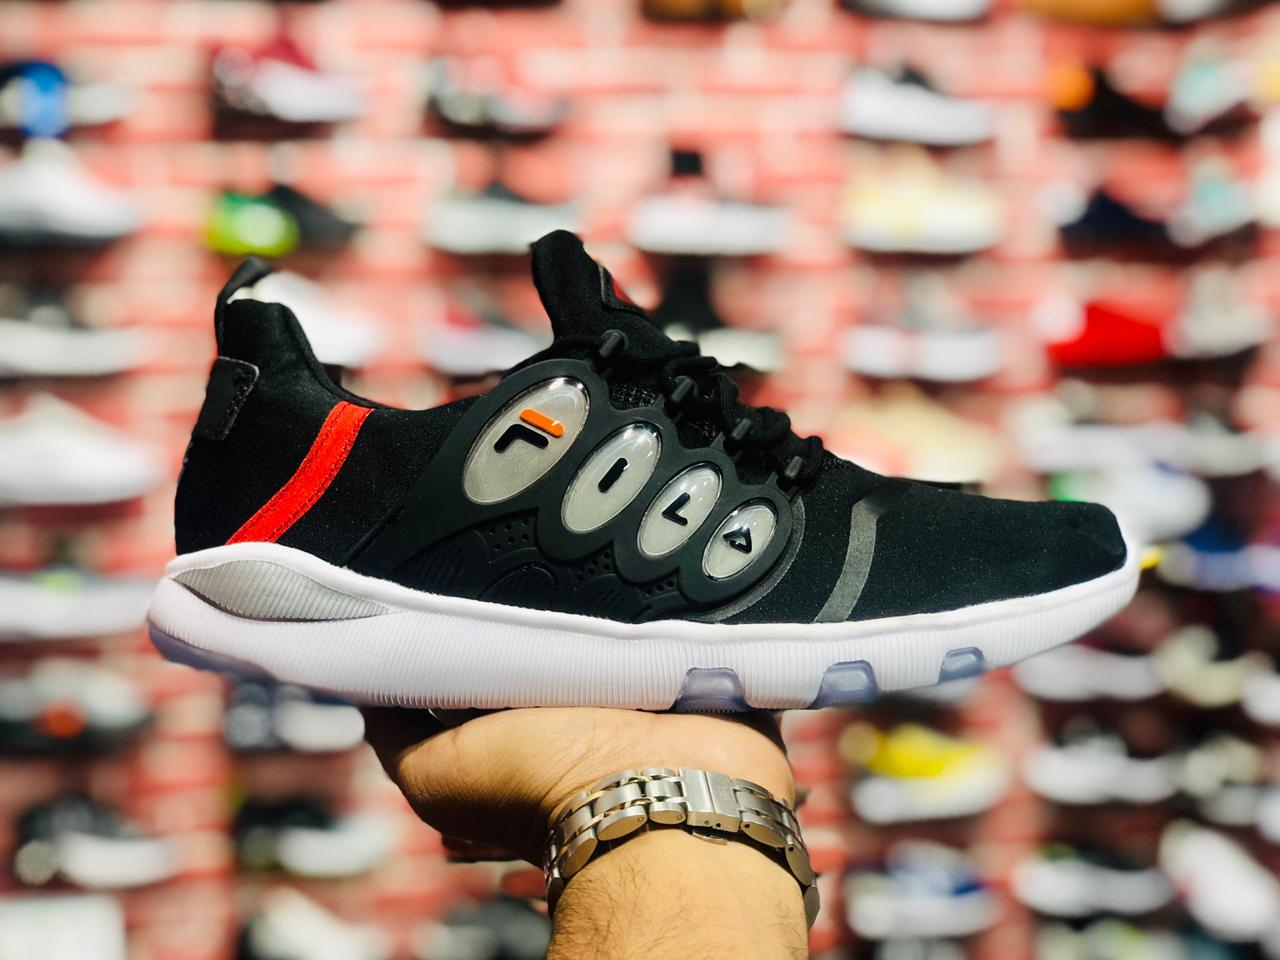 Fila soft capsule shoes (Black)